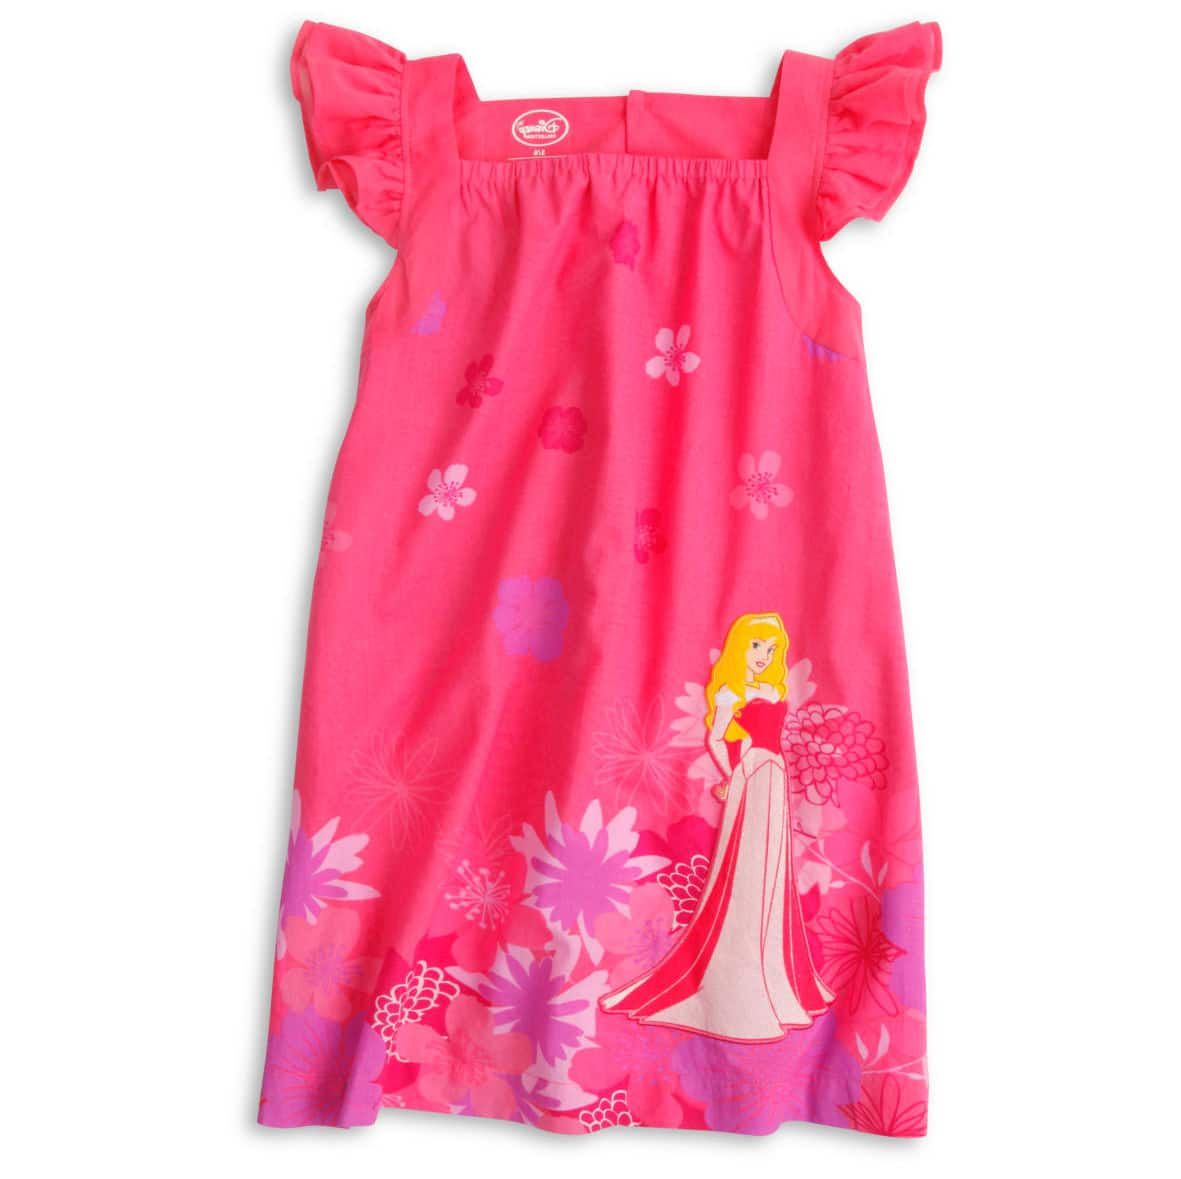 Online Minnie Mouse Clothes Picture